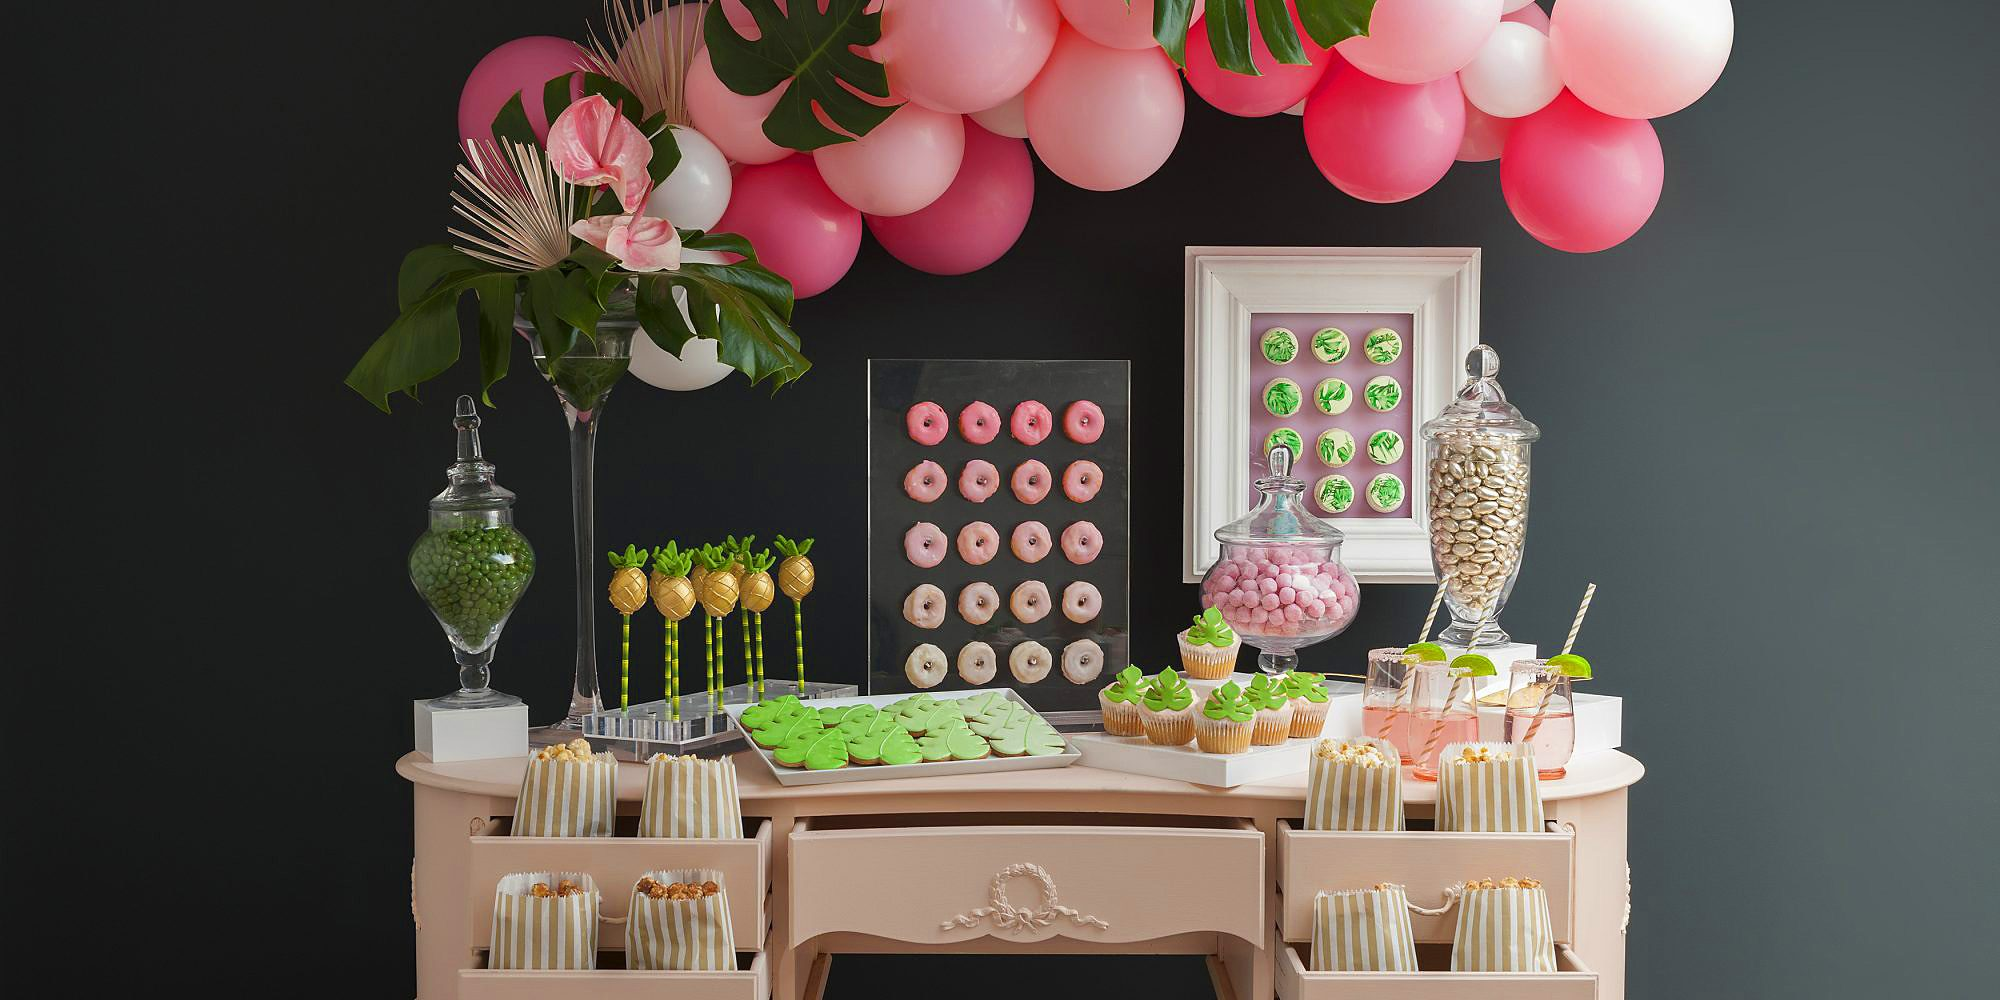 Tina Nisson Design sweetie counter event design